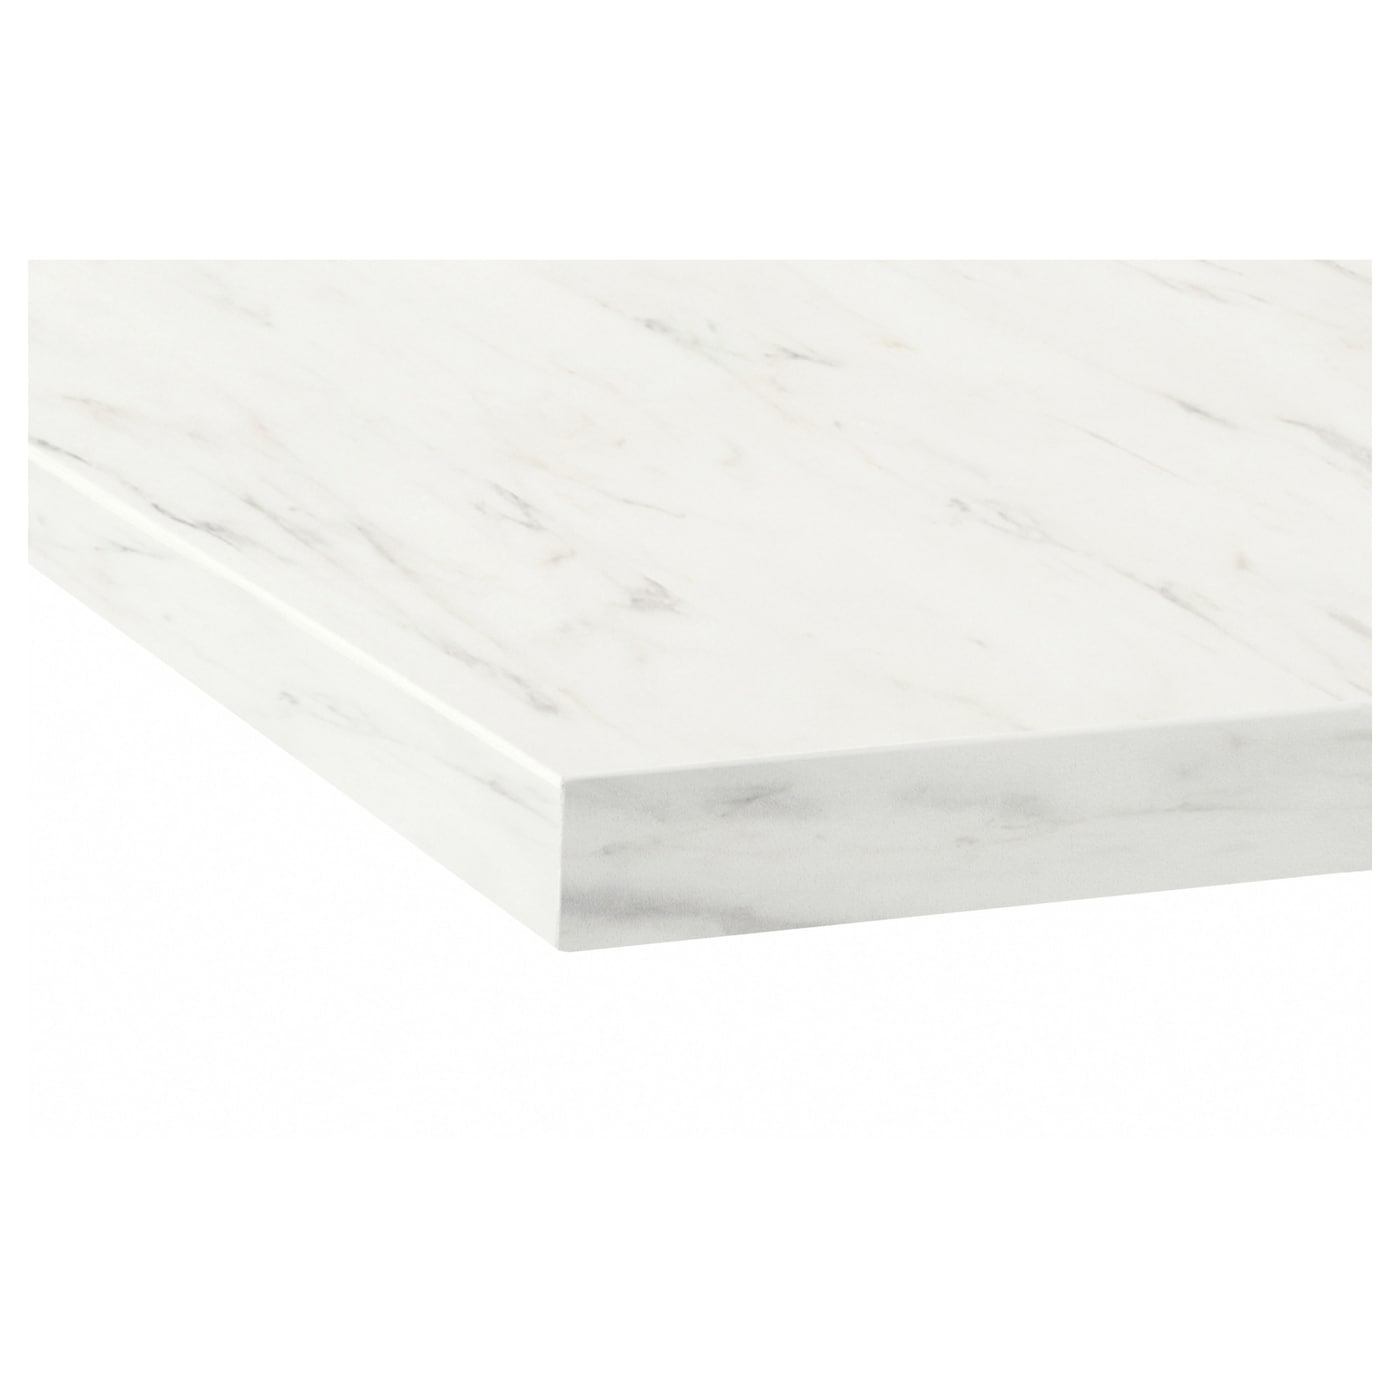 EKBACKEN Worktop White marble effect 246x2 8 cm IKEA